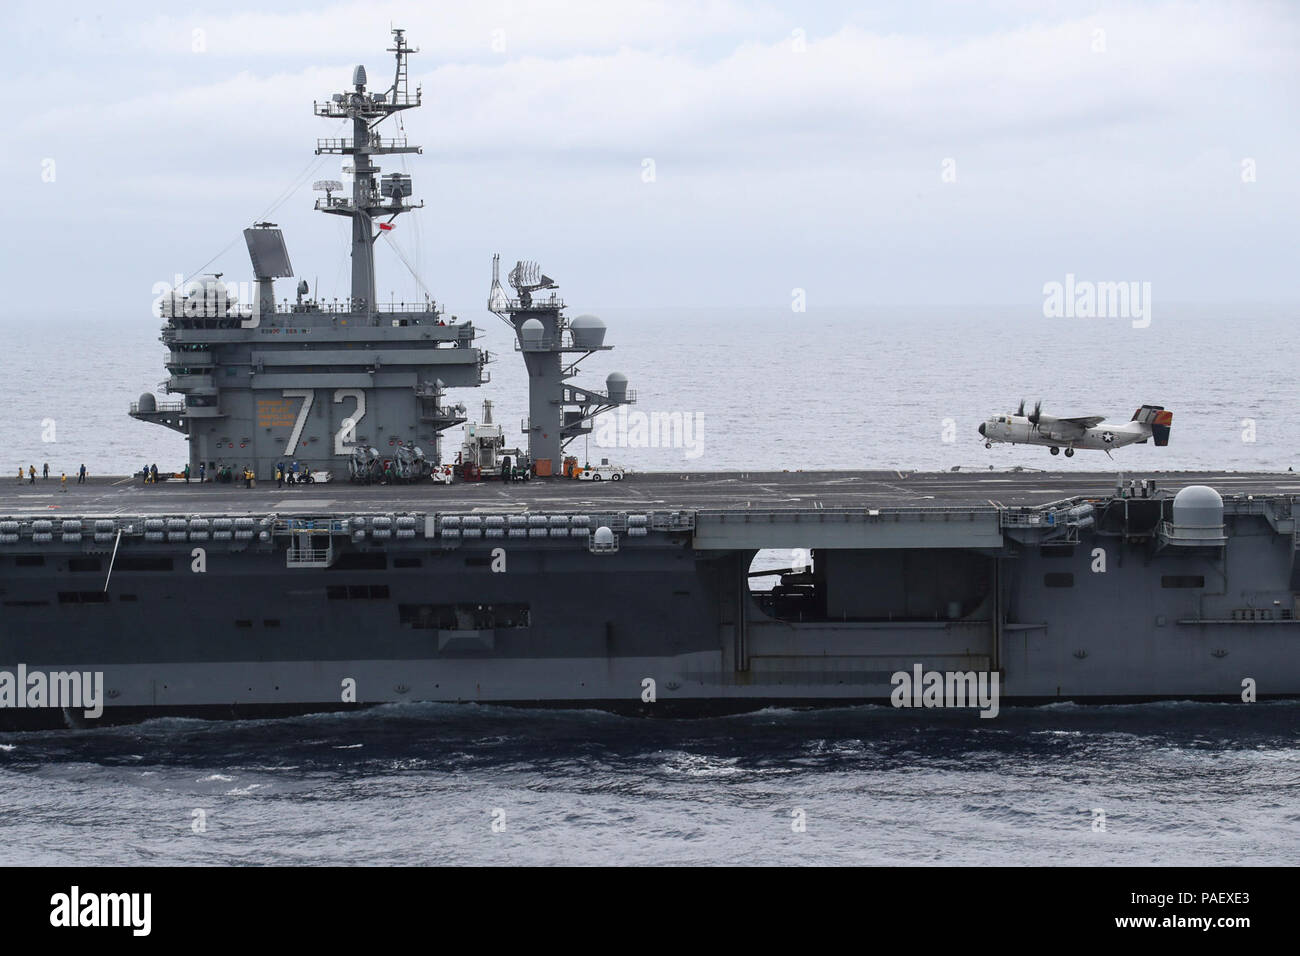 OCEAN (May 7, 2018) A C-2A Greyhound assigned to the Rawhides of Fleet Logistics Support Squadron (VRC) 40 prepares to land on the flight deck of the Nimitz-class aircraft carrier USS Abraham Lincoln (CVN 72). - Stock Image